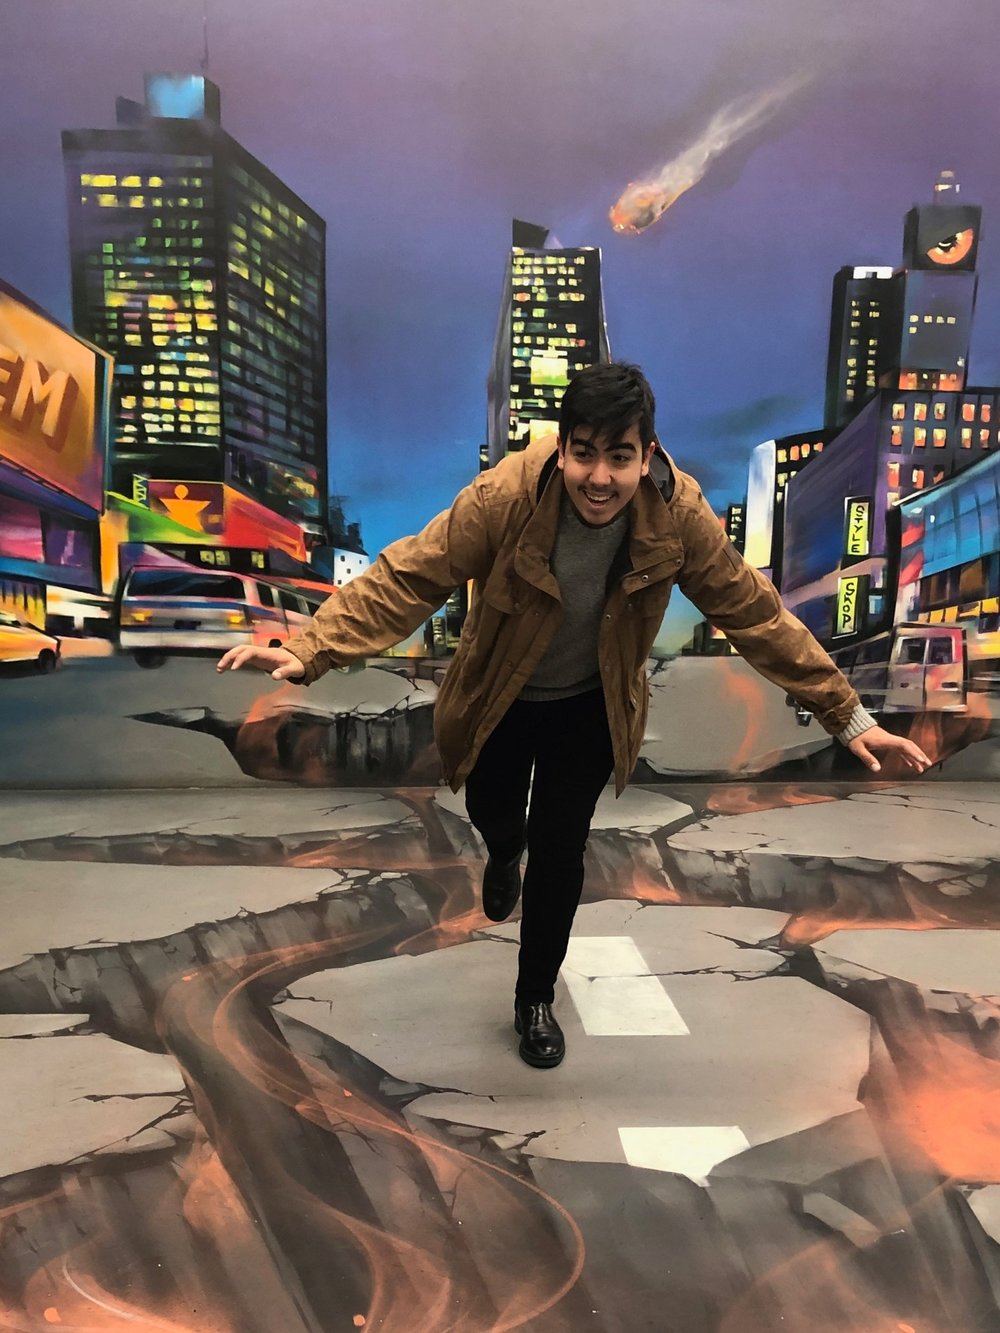 Benson - Juan Villaseñor - Hello everyone! My name is Juan Villaseñor, but you can call Johnny. I am from Chicago, Illinois the best city in the world! I am so excited to be one of the Co-RAs of Benson Hall! I am a Biology major on the Premed track. At CMC, I am part of ¡Mi Gente!, I am involved in IM soccer and trivia, and I love going on and to CPB events! At the 5Cs, I work as a Peer Health Educator at Health Education Outreach and have served as a CLSA mentor for the past two years. In my free time, I love to play soccer, play the guitar and bass, go to concerts (bands I've seen recently include Joyce Manor and Remo Drive), play FIFA with friends (Real Madrid is my team), go to the movies with friends (Marvel and horror movies are my favorites), act and do improv(if you're interested in improv HMU), find memes, buy shoes (Vans are life), and listen to podcasts (My favorite is Lore)! If you ever see me around please say hi!Best,Juan